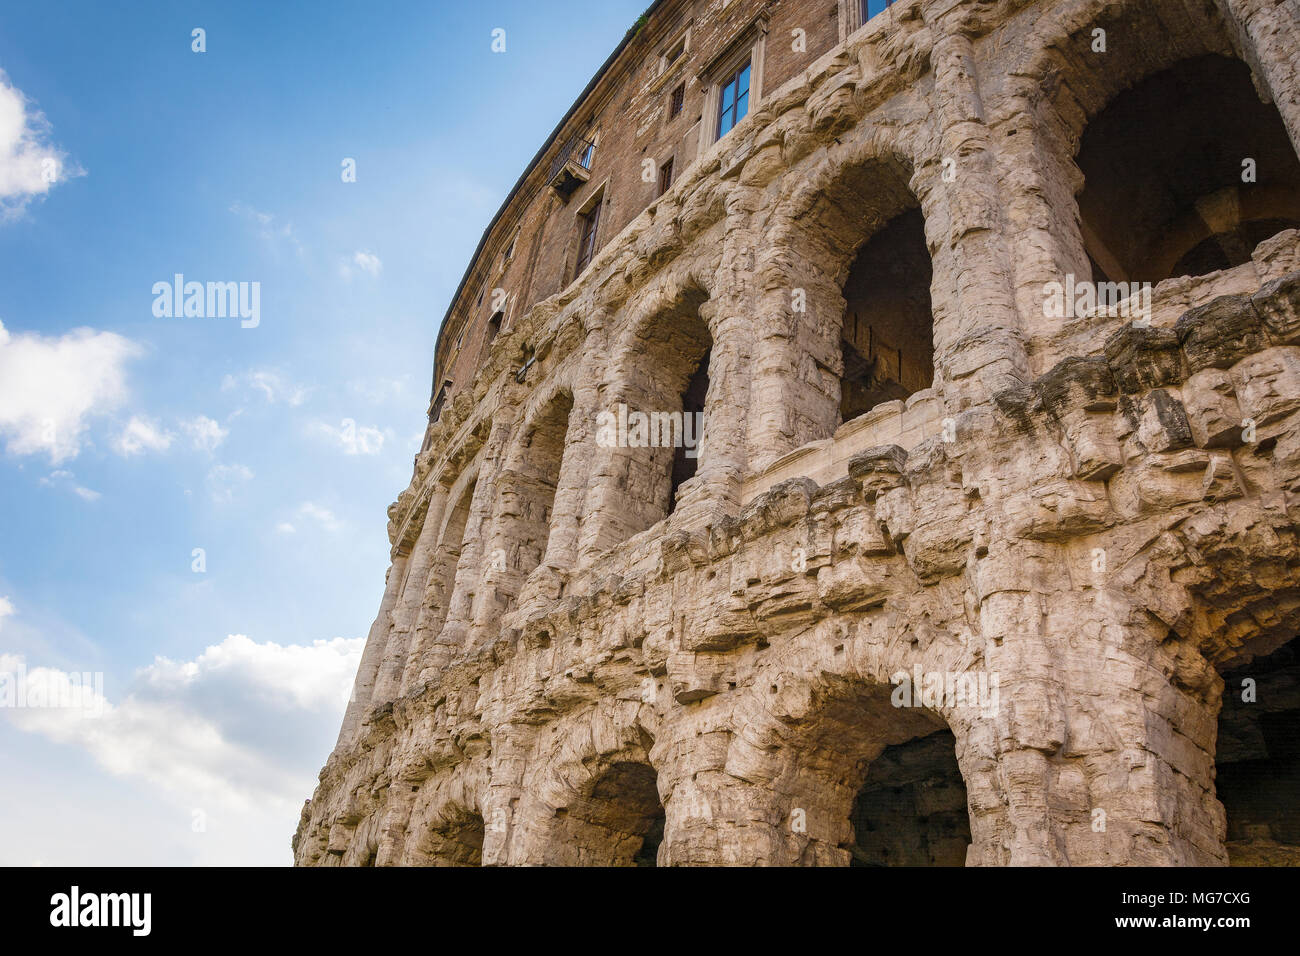 Scenic view on the ancient Theatre of Marcellus (Teatro di Marcello) and ruin of old building (antique columns and detail of the cornice) next to it o Stock Photo